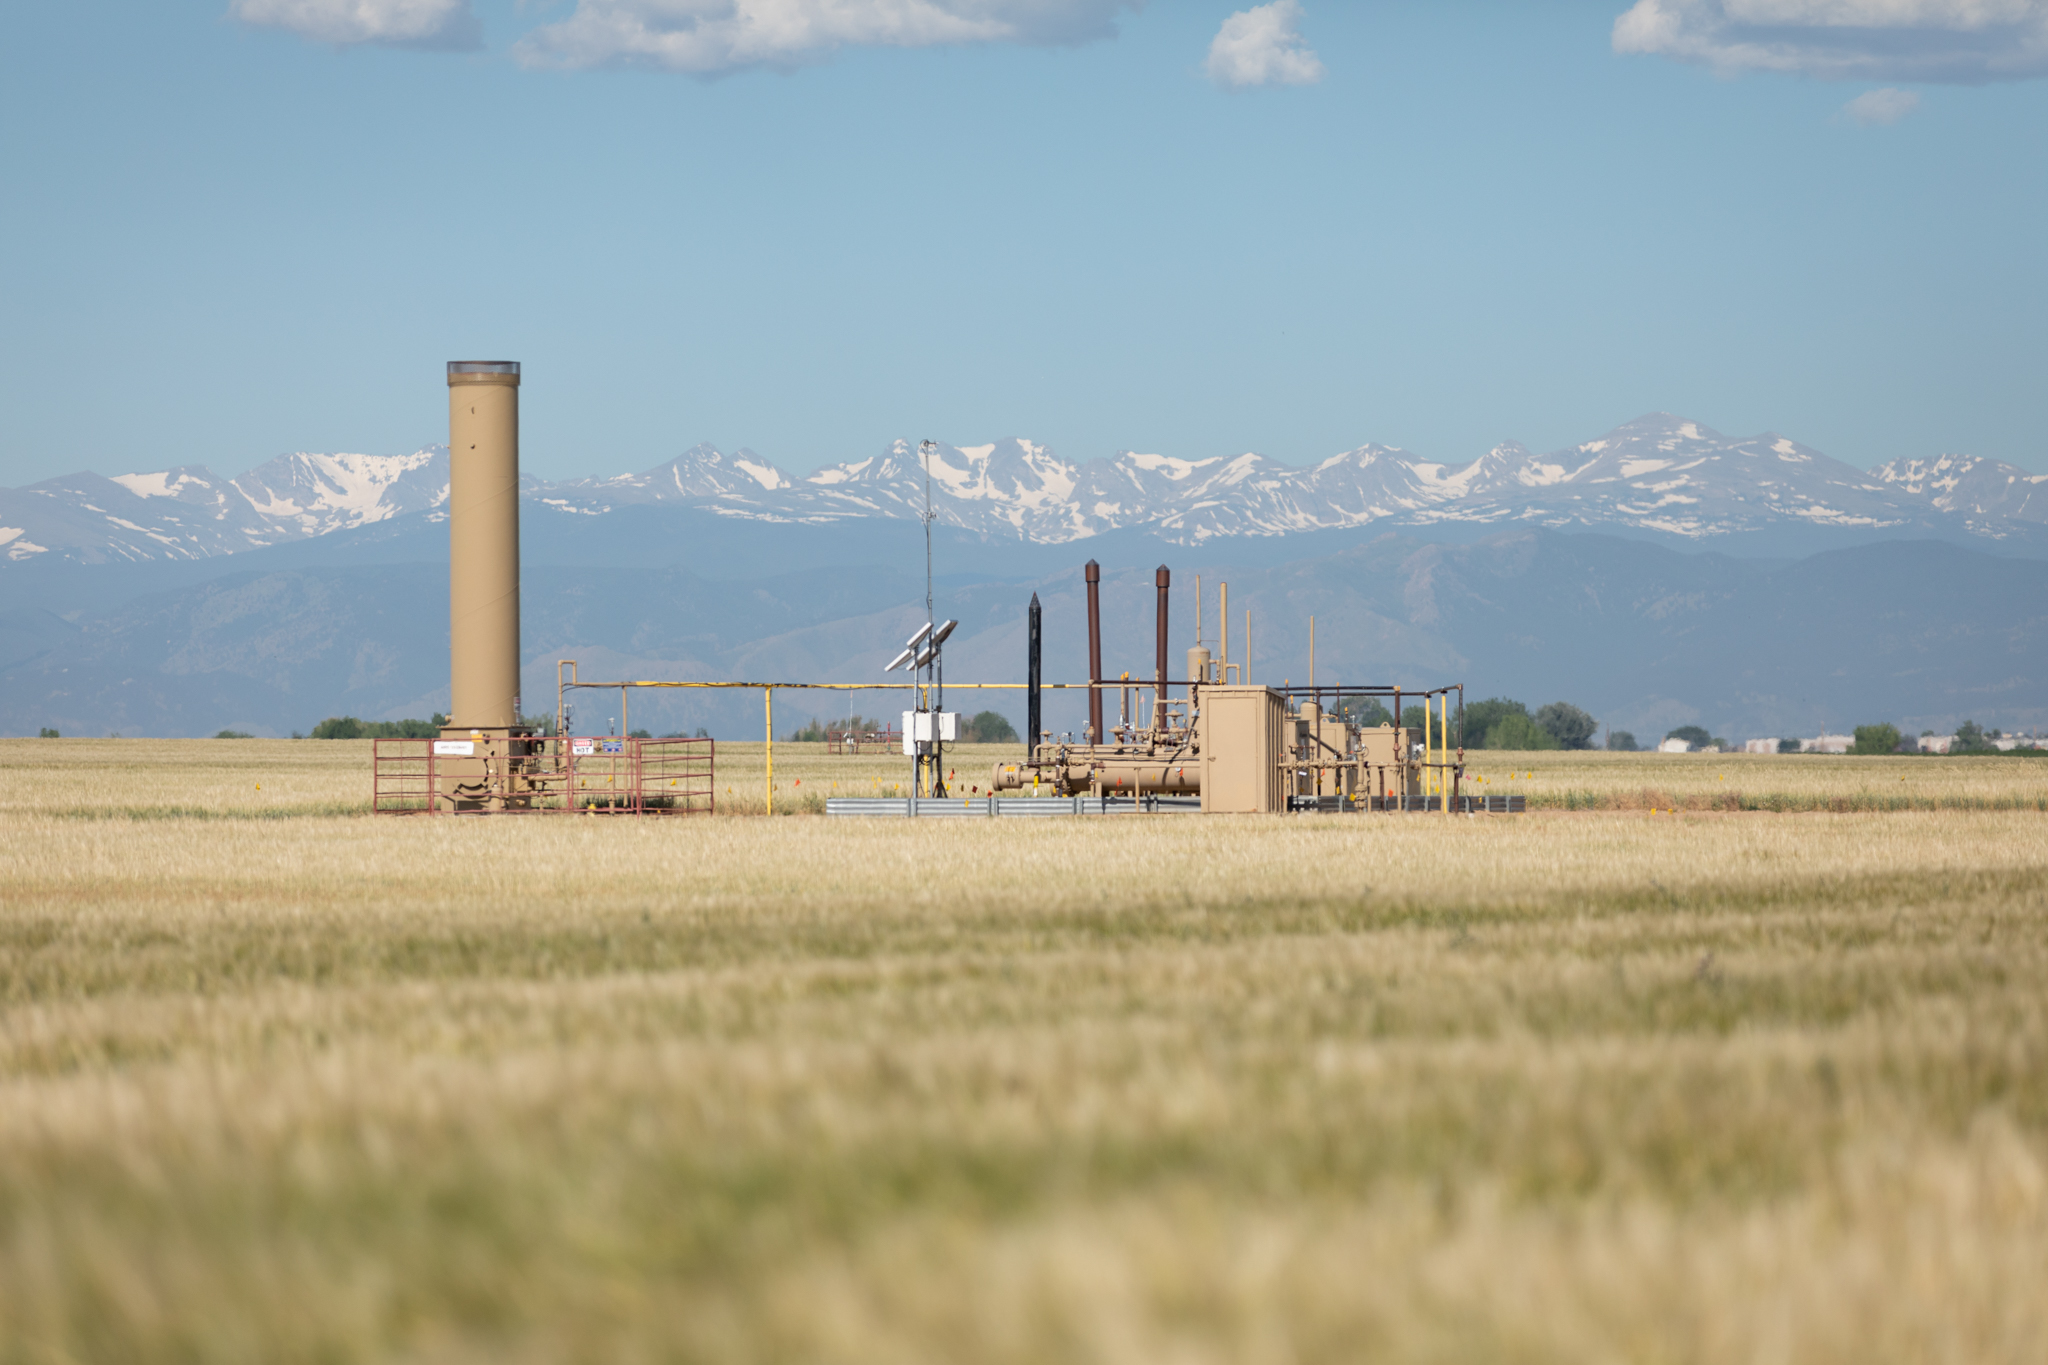 Colorado weighs new bonding rules to address 'orphaned' oil and gas wells